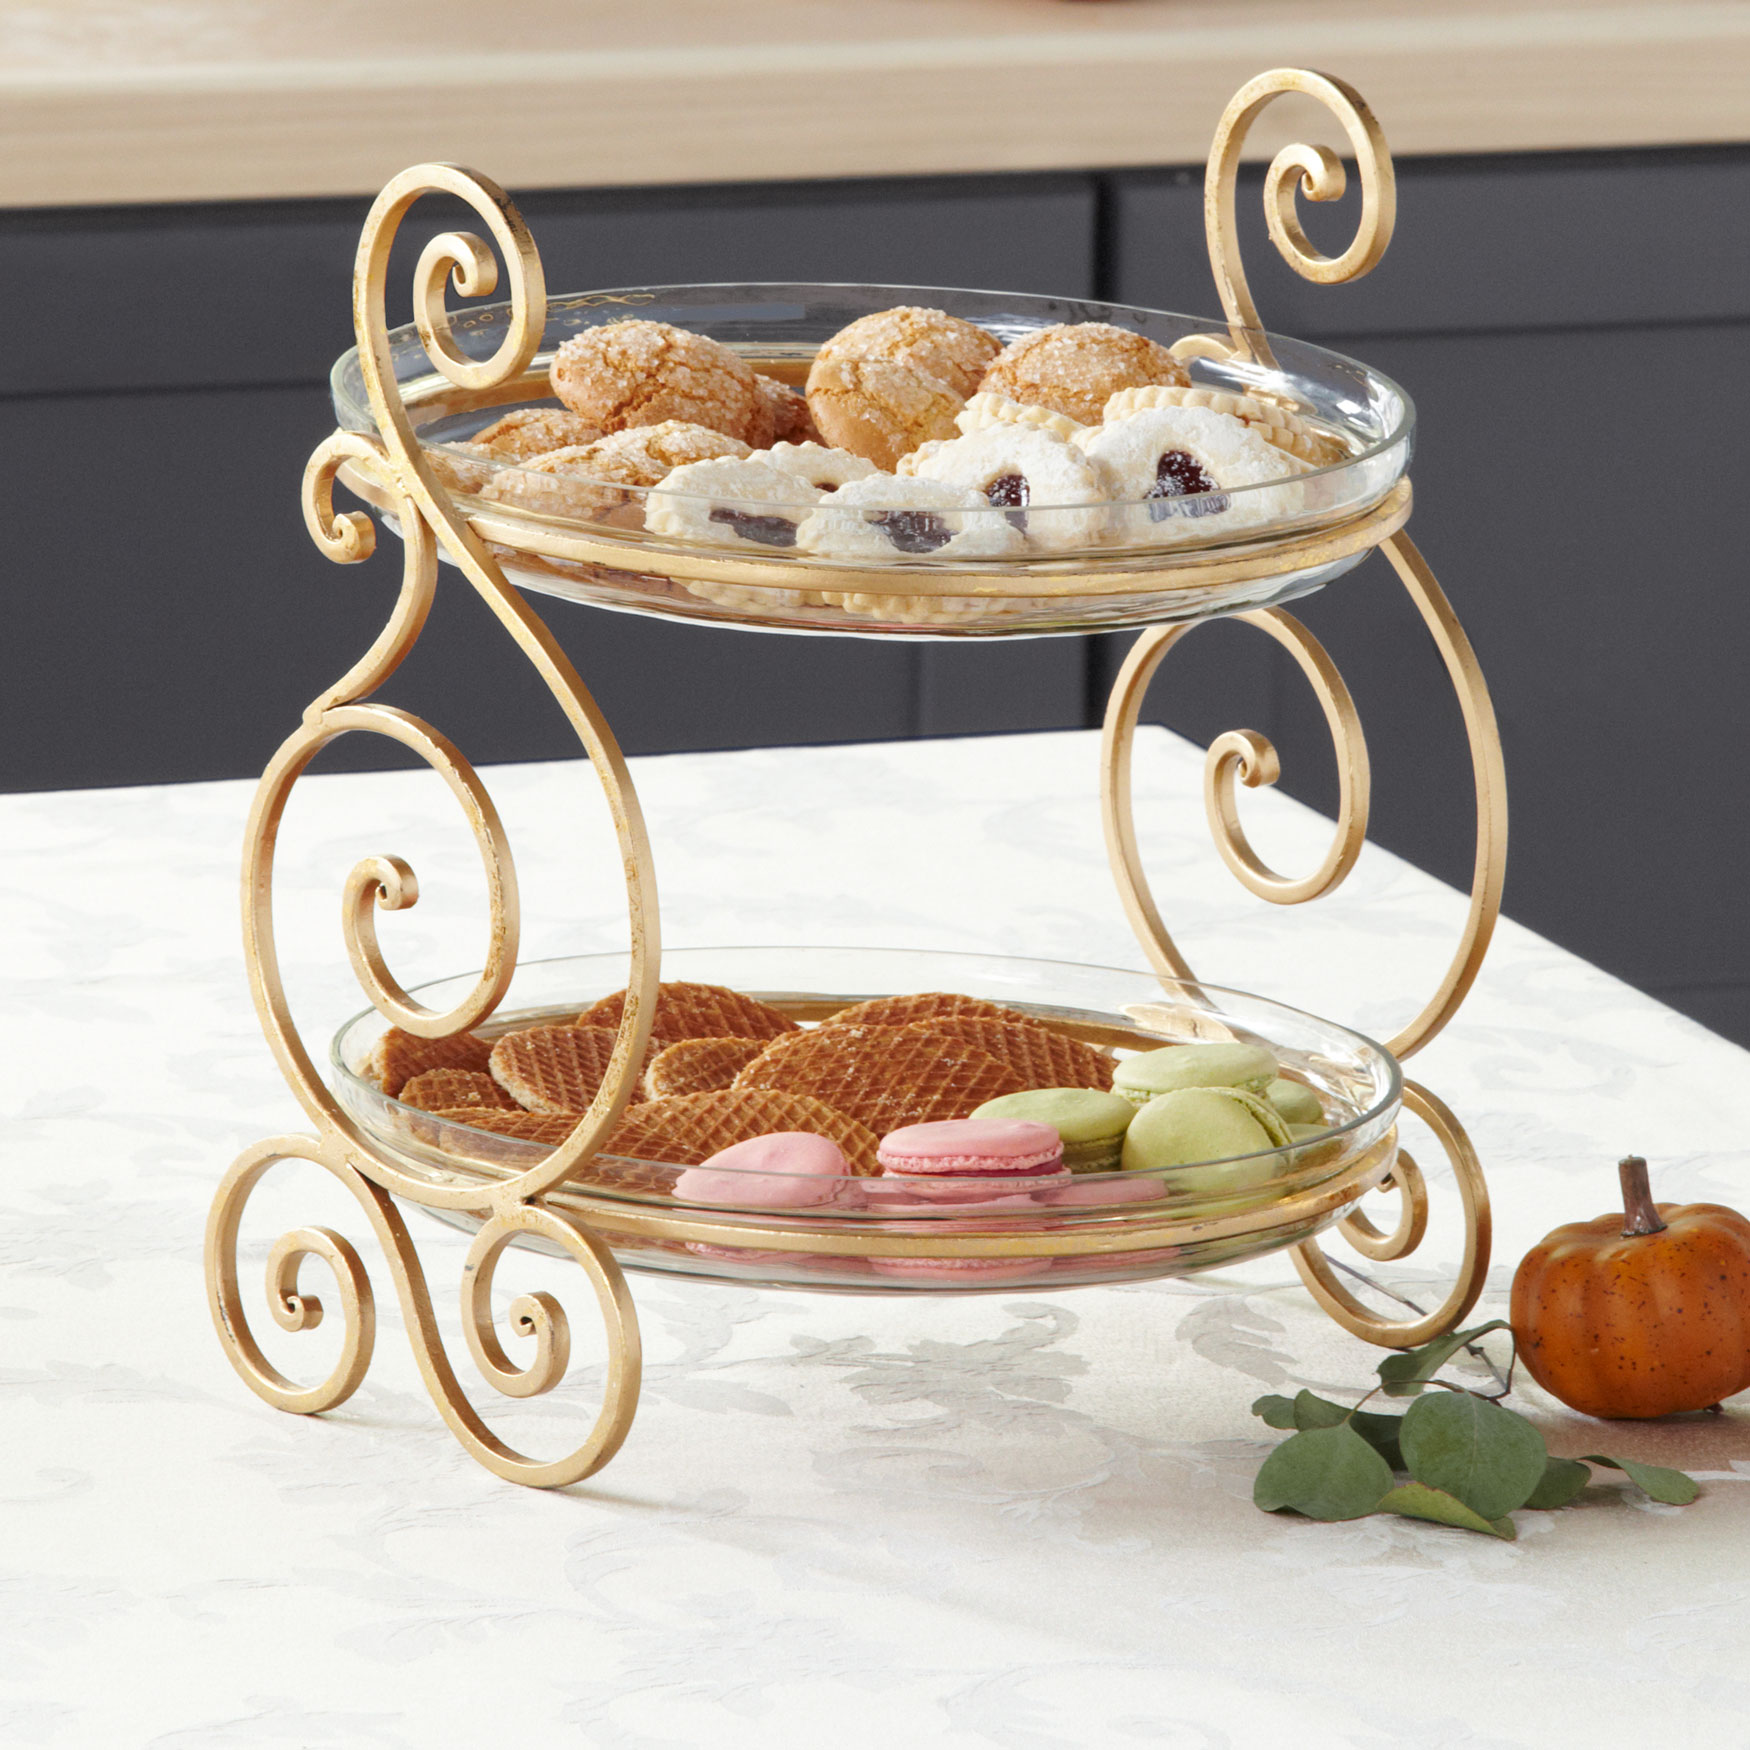 2-Tier Server with Bowls, GOLD